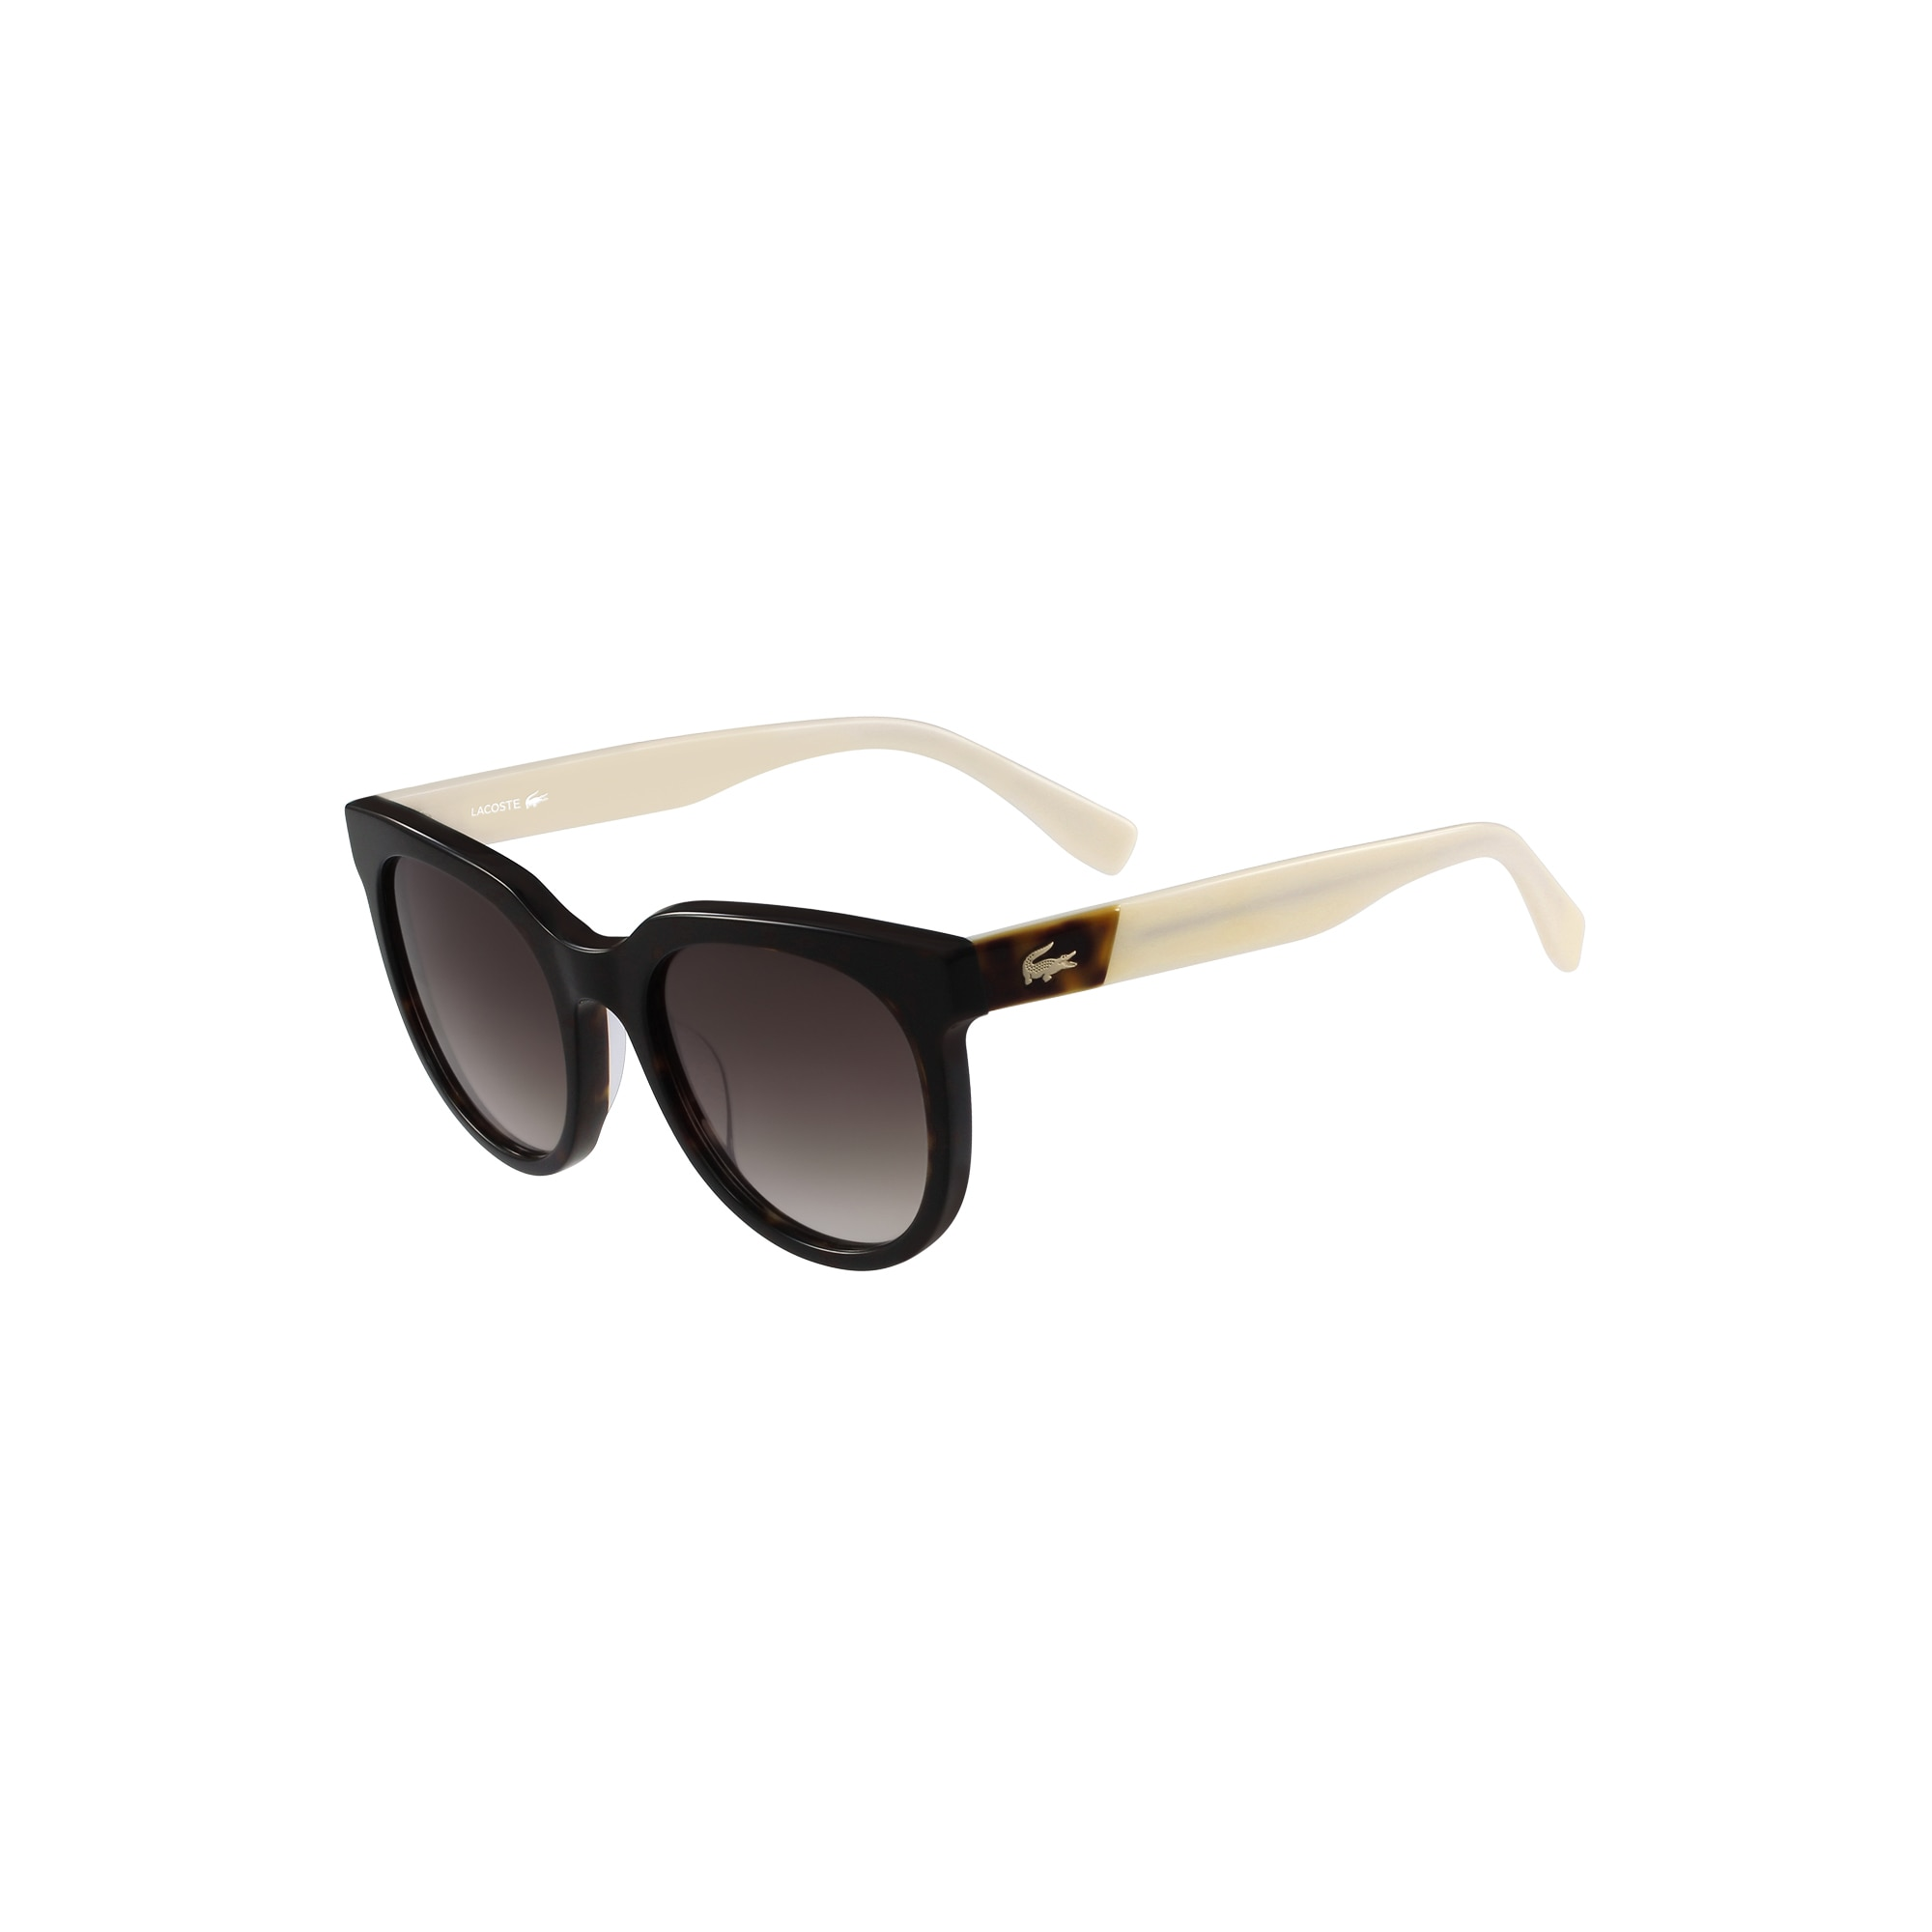 11d18aaa9c8 Women s Vintage Inspired Square Sunglasses